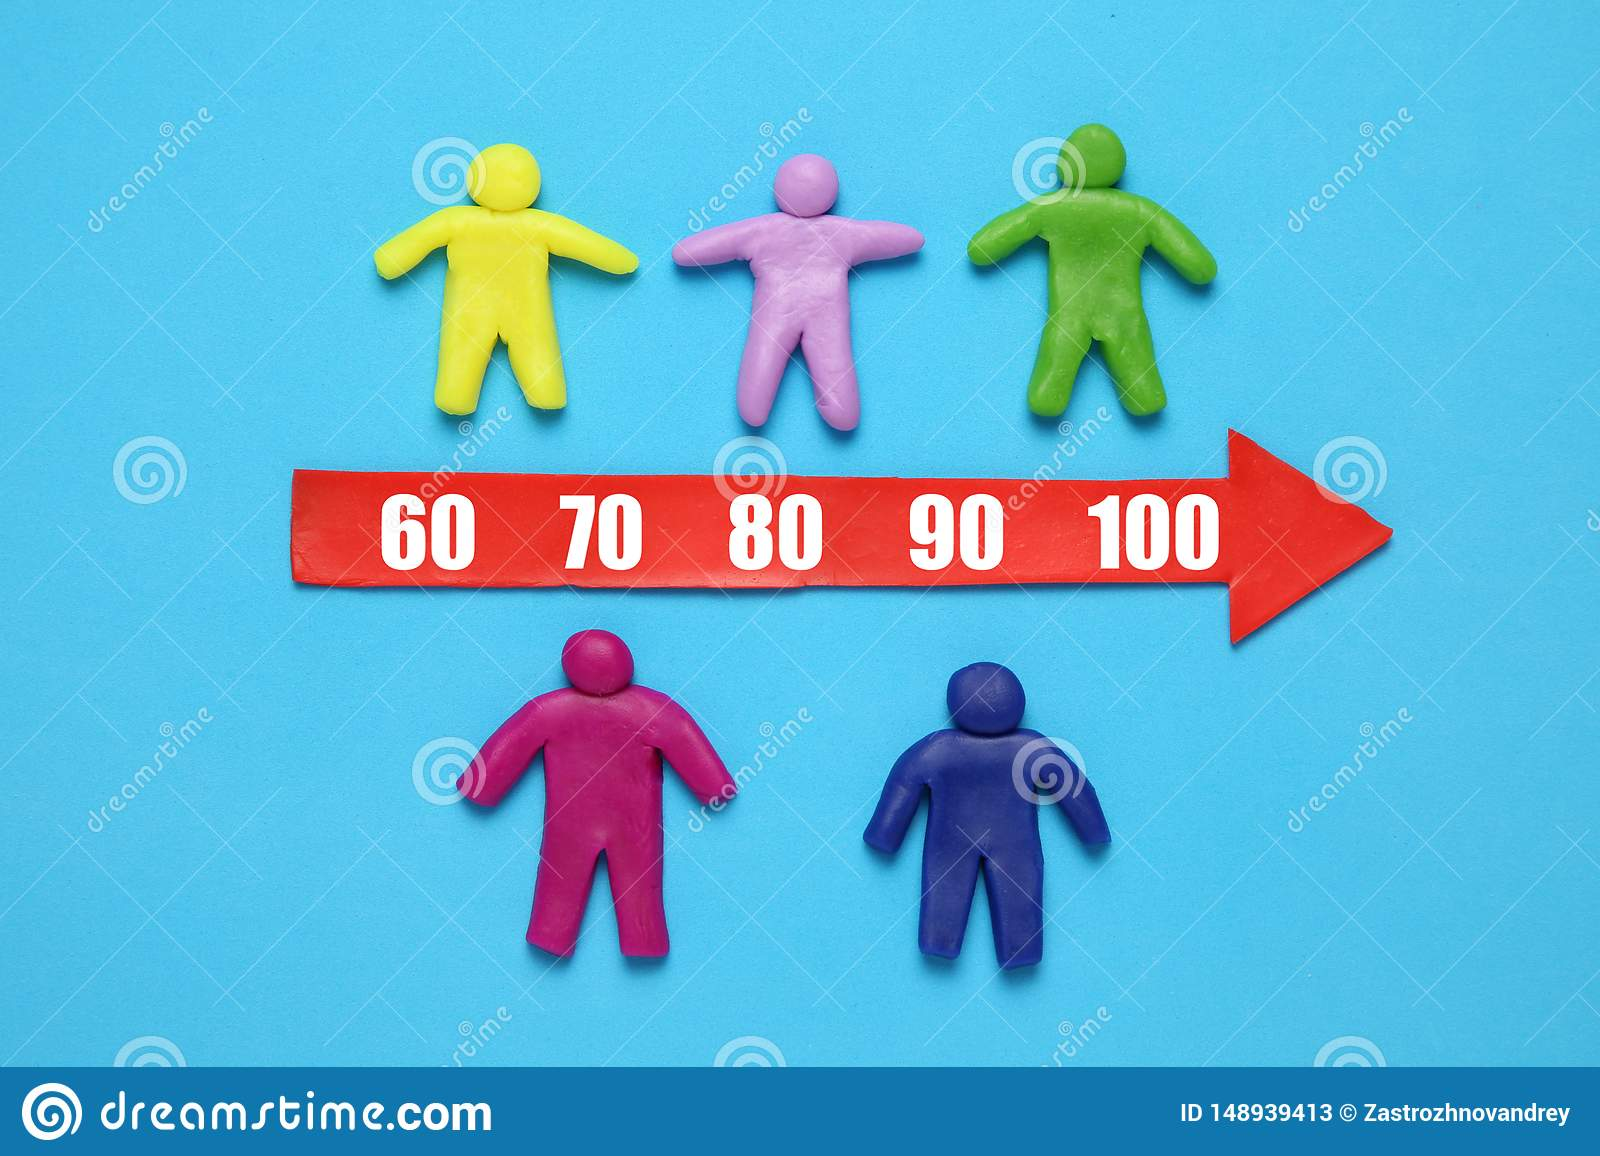 Plasticine figures of pensioners and old people. Increase in longevity. Age more than hundred years